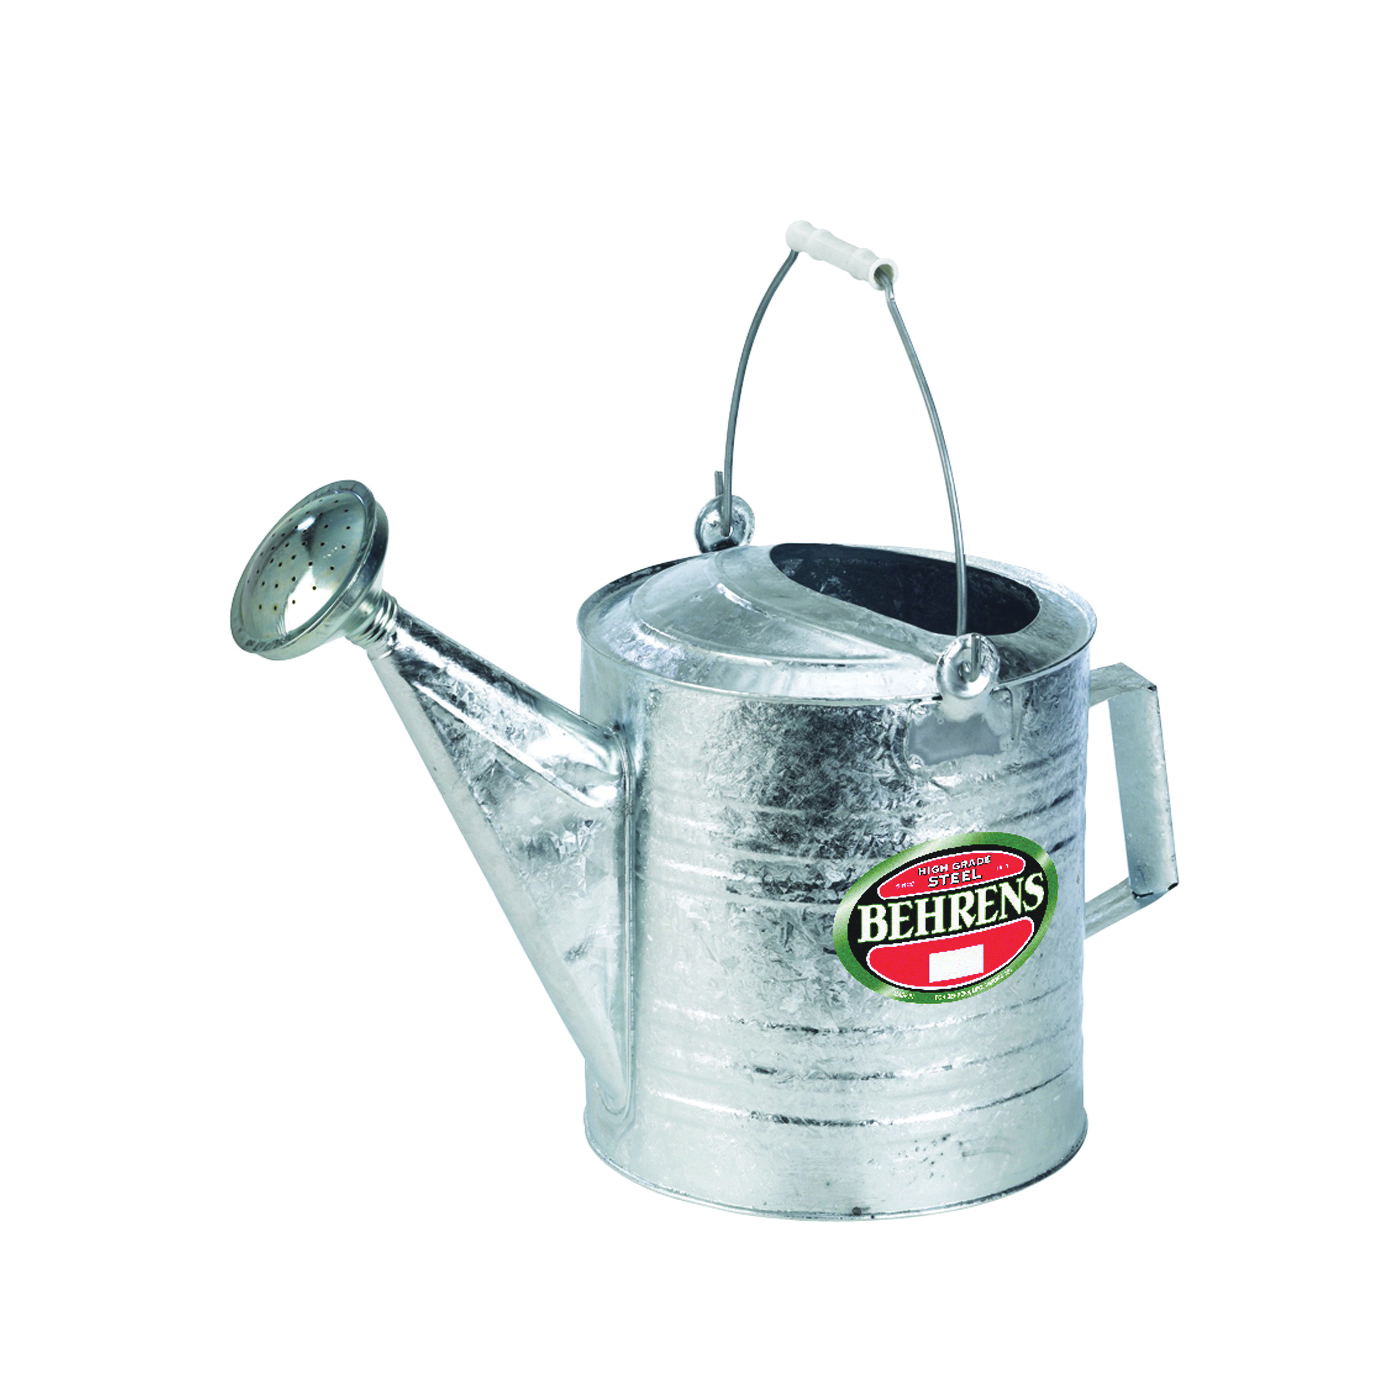 Picture of Behrens 210 Watering Can, 2.5 gal Can, Steel